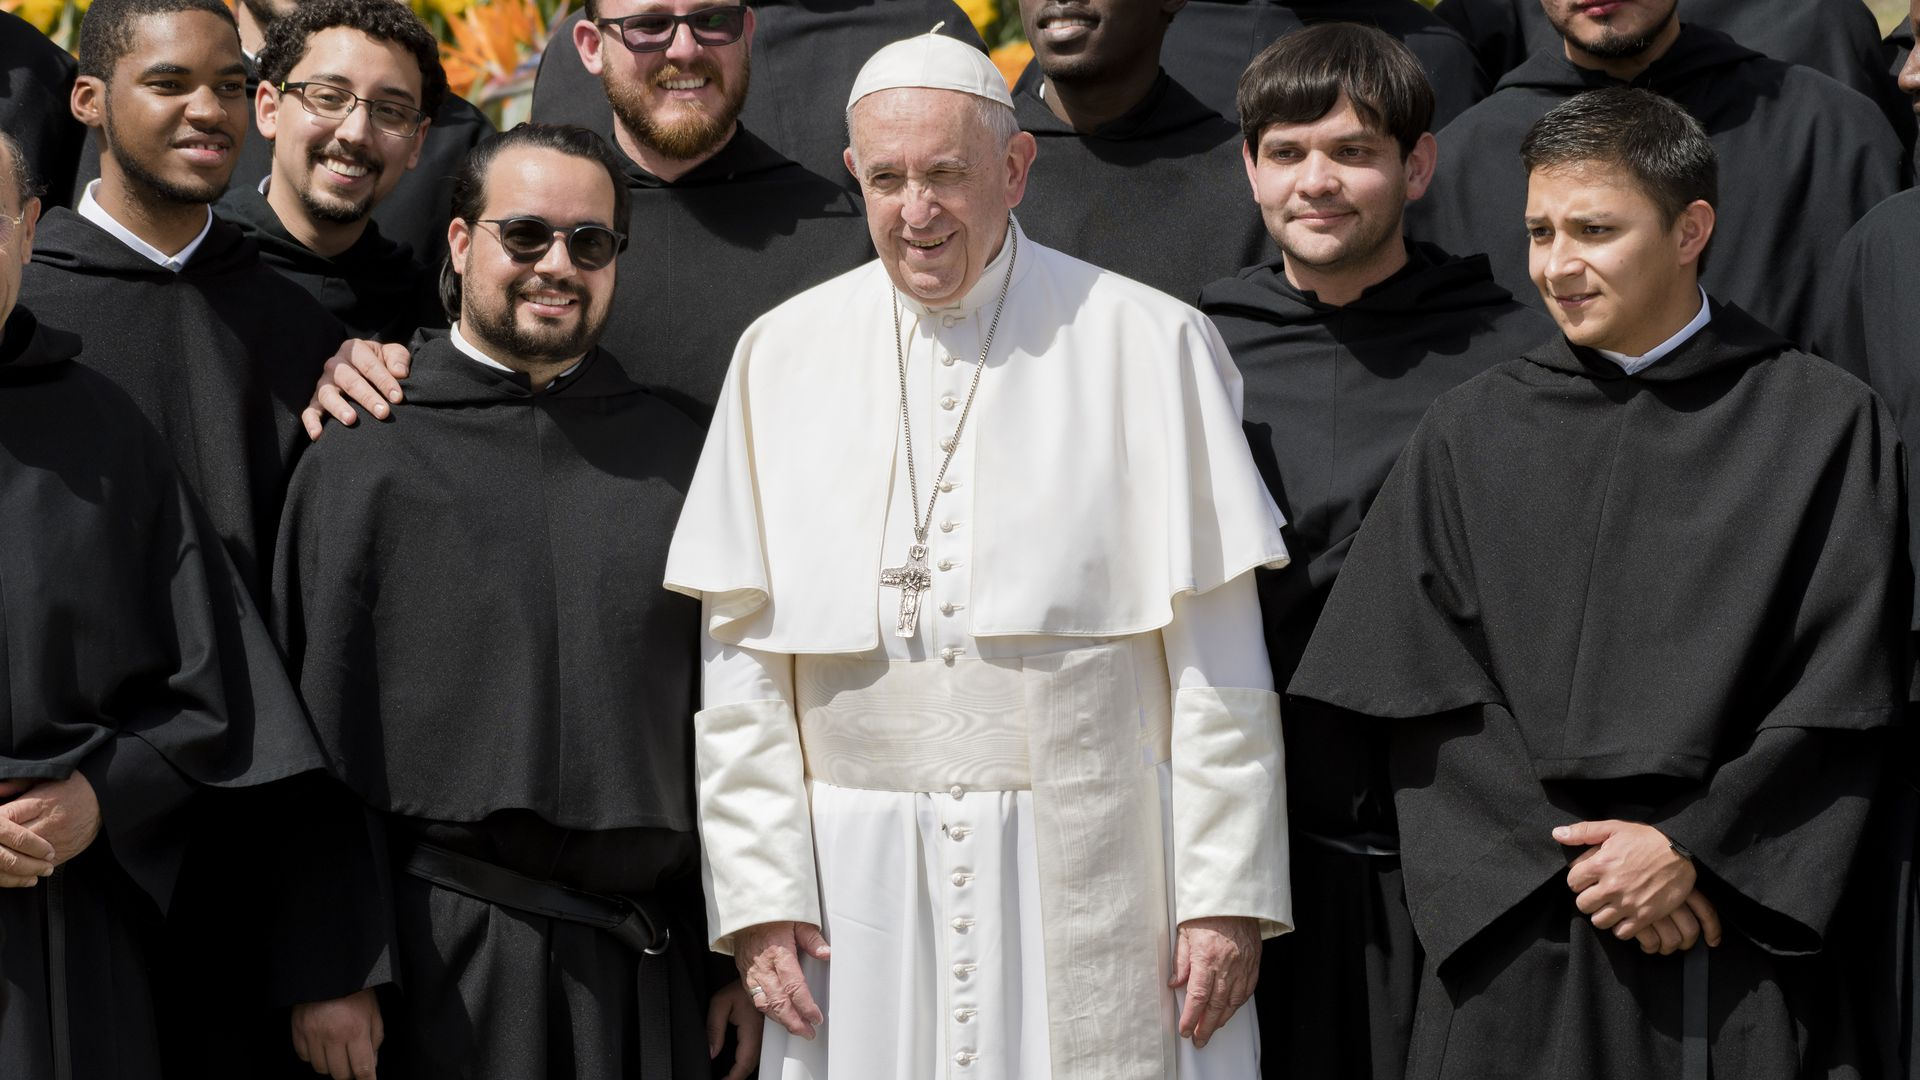 Pope francis standing with priests